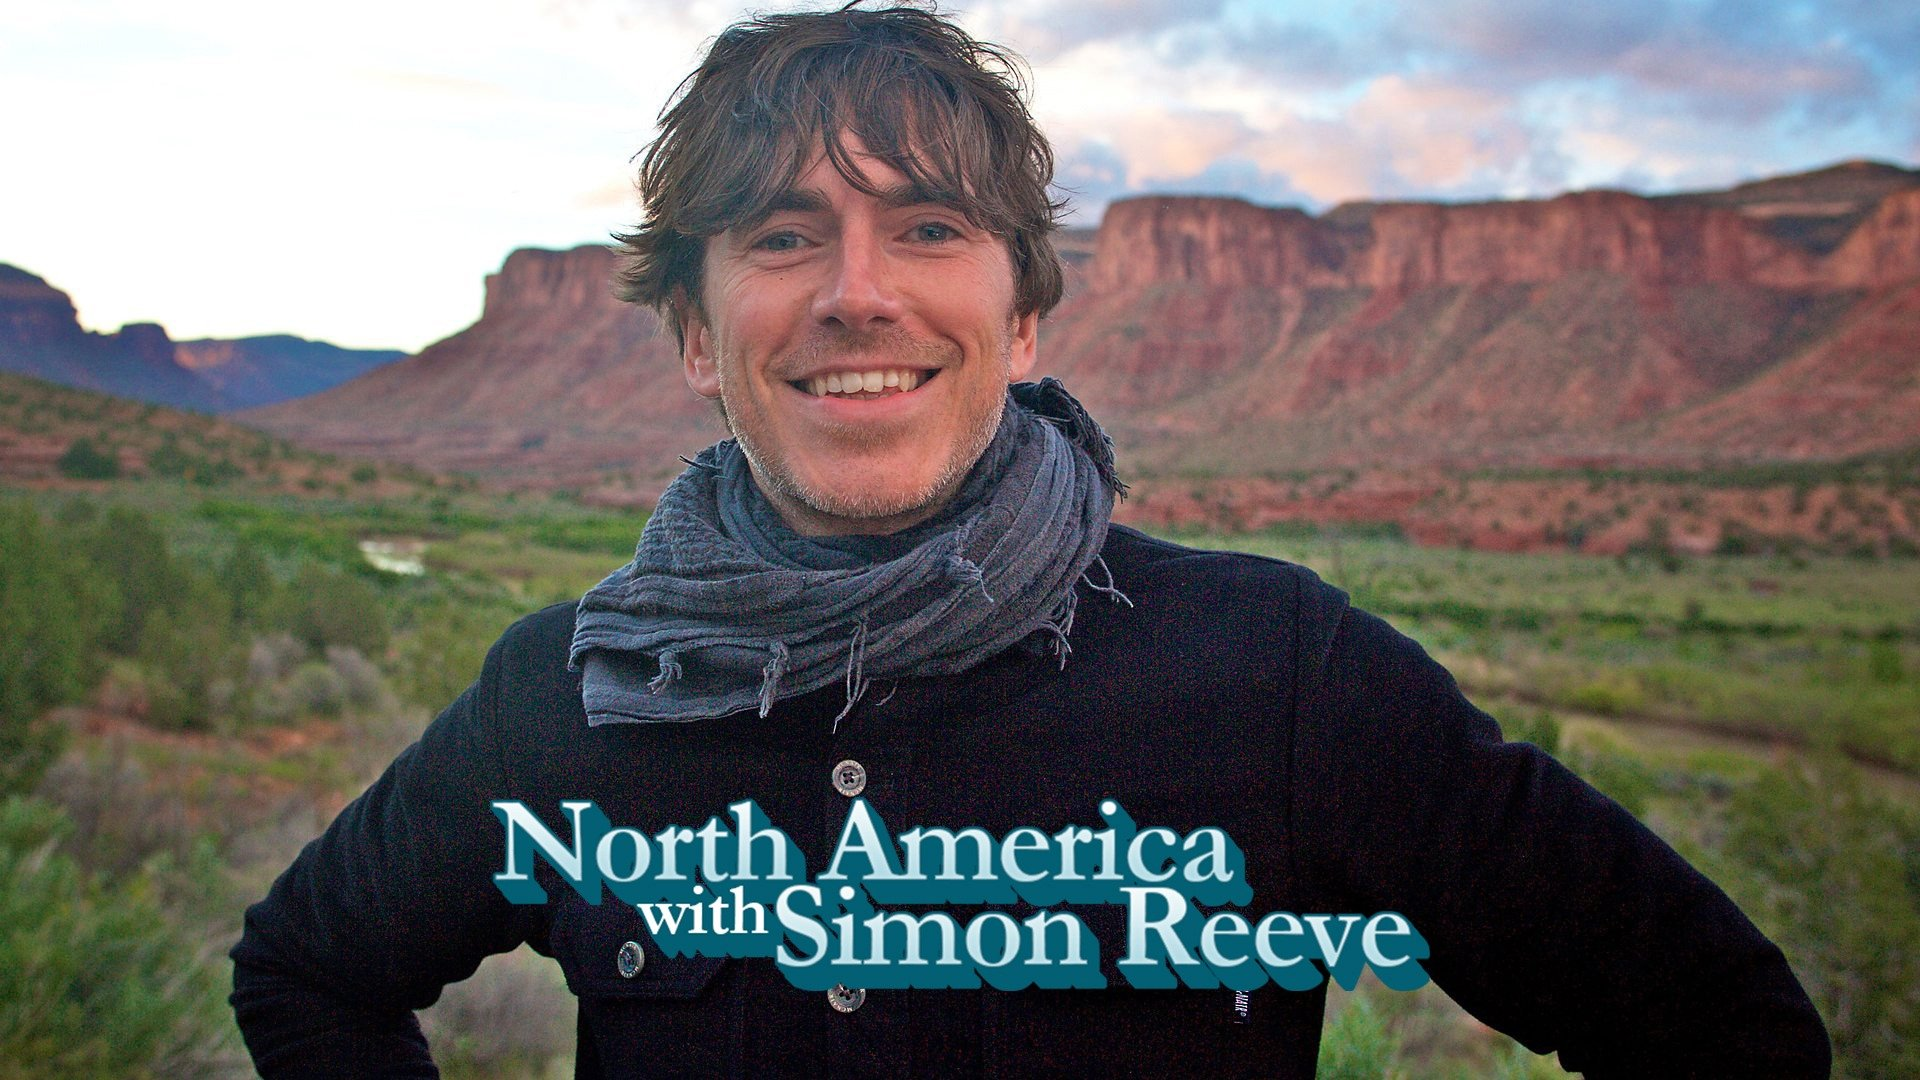 North America with Simon Reeve